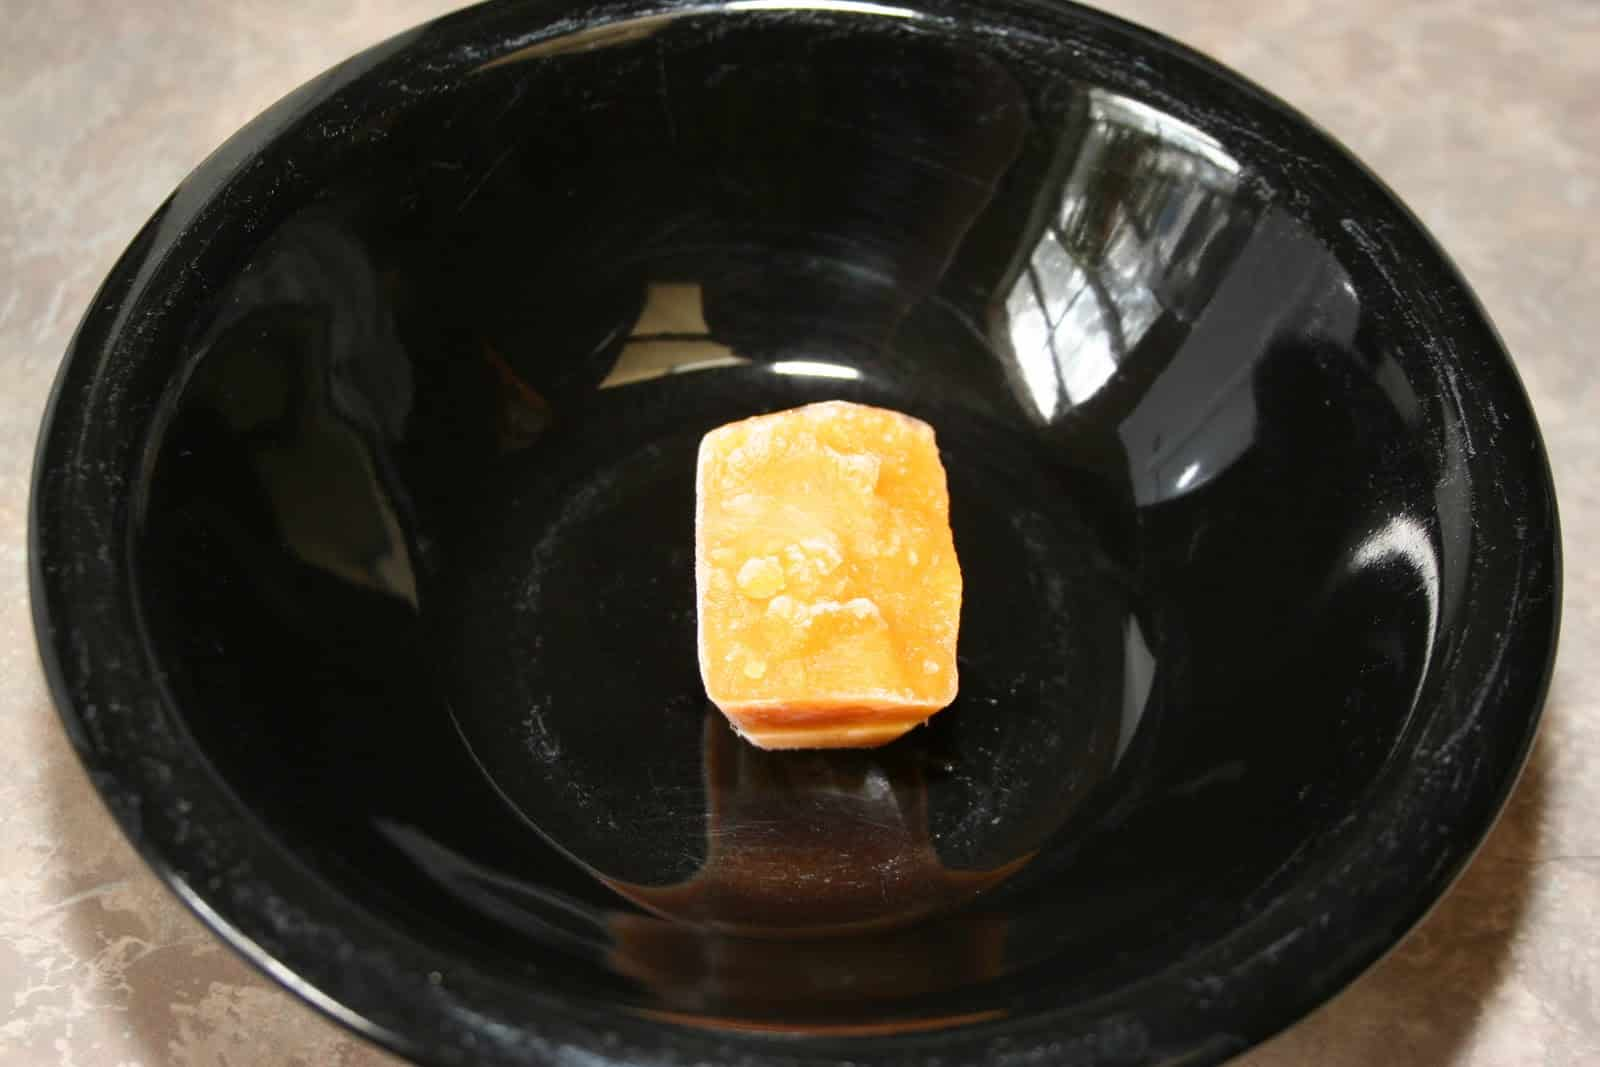 Frozen cube before going in microwave. Heat 1-2 minutes.